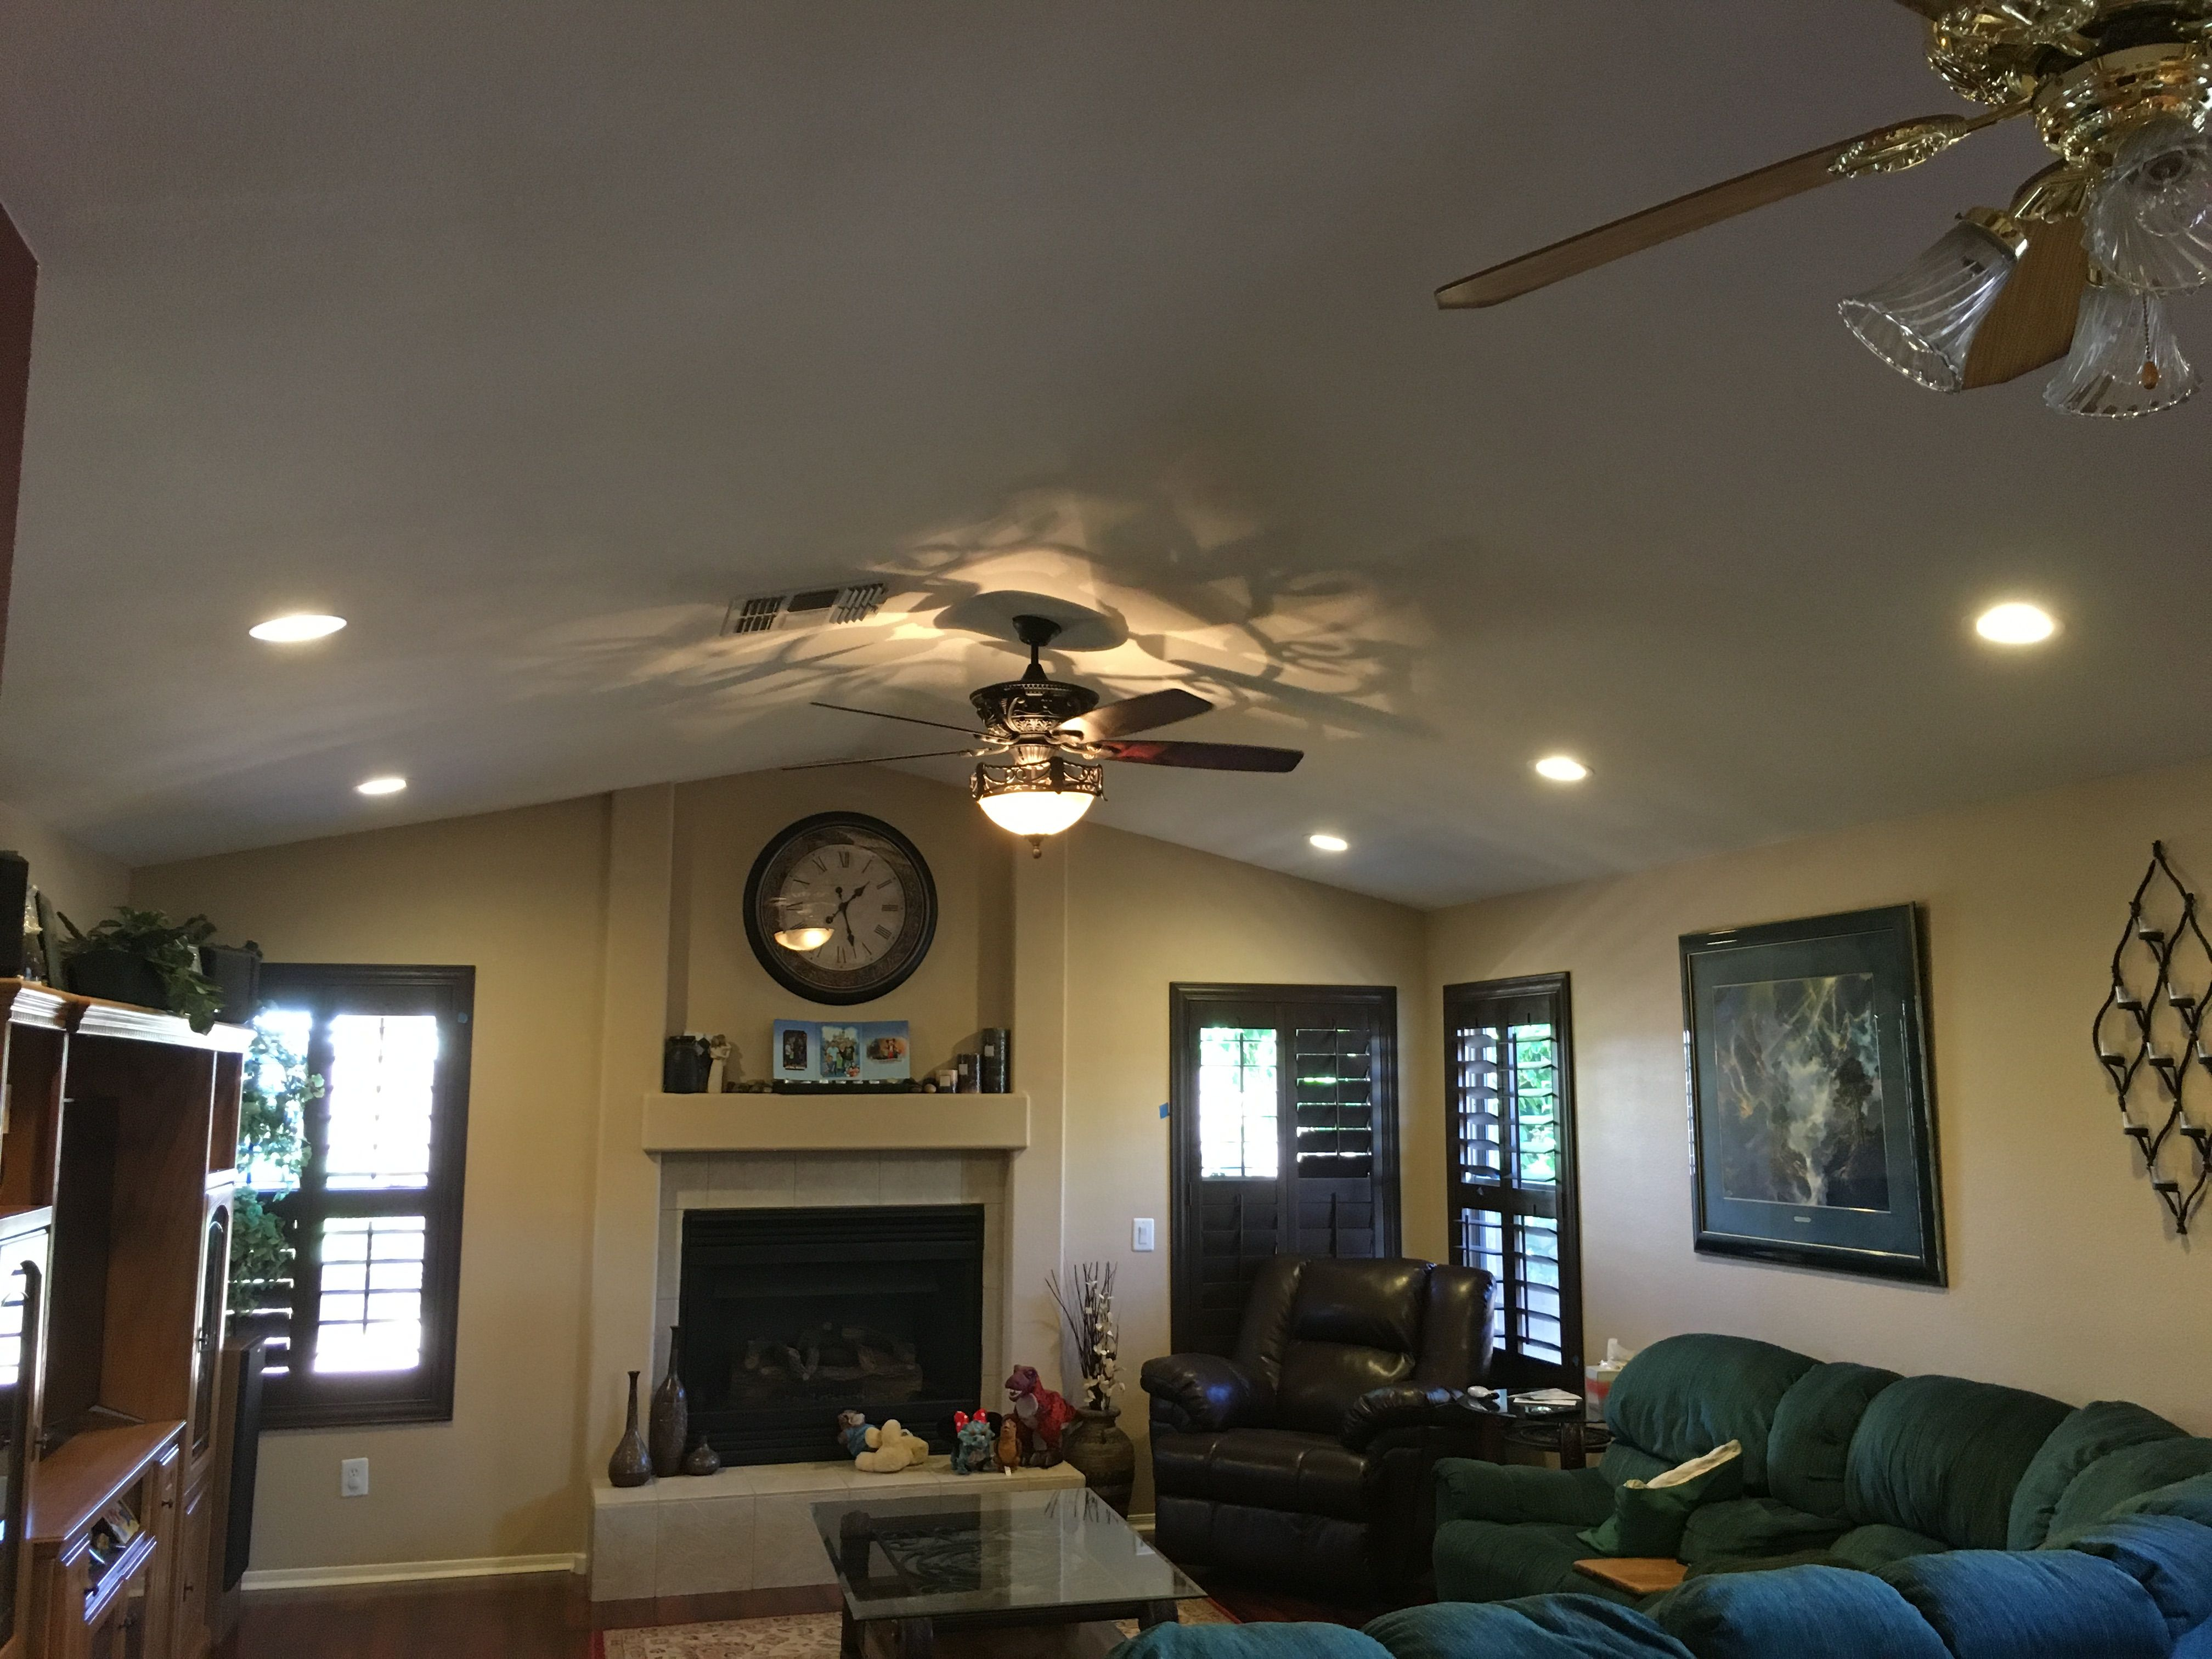 5 Led Recessed Lighting Installed In The Family Room